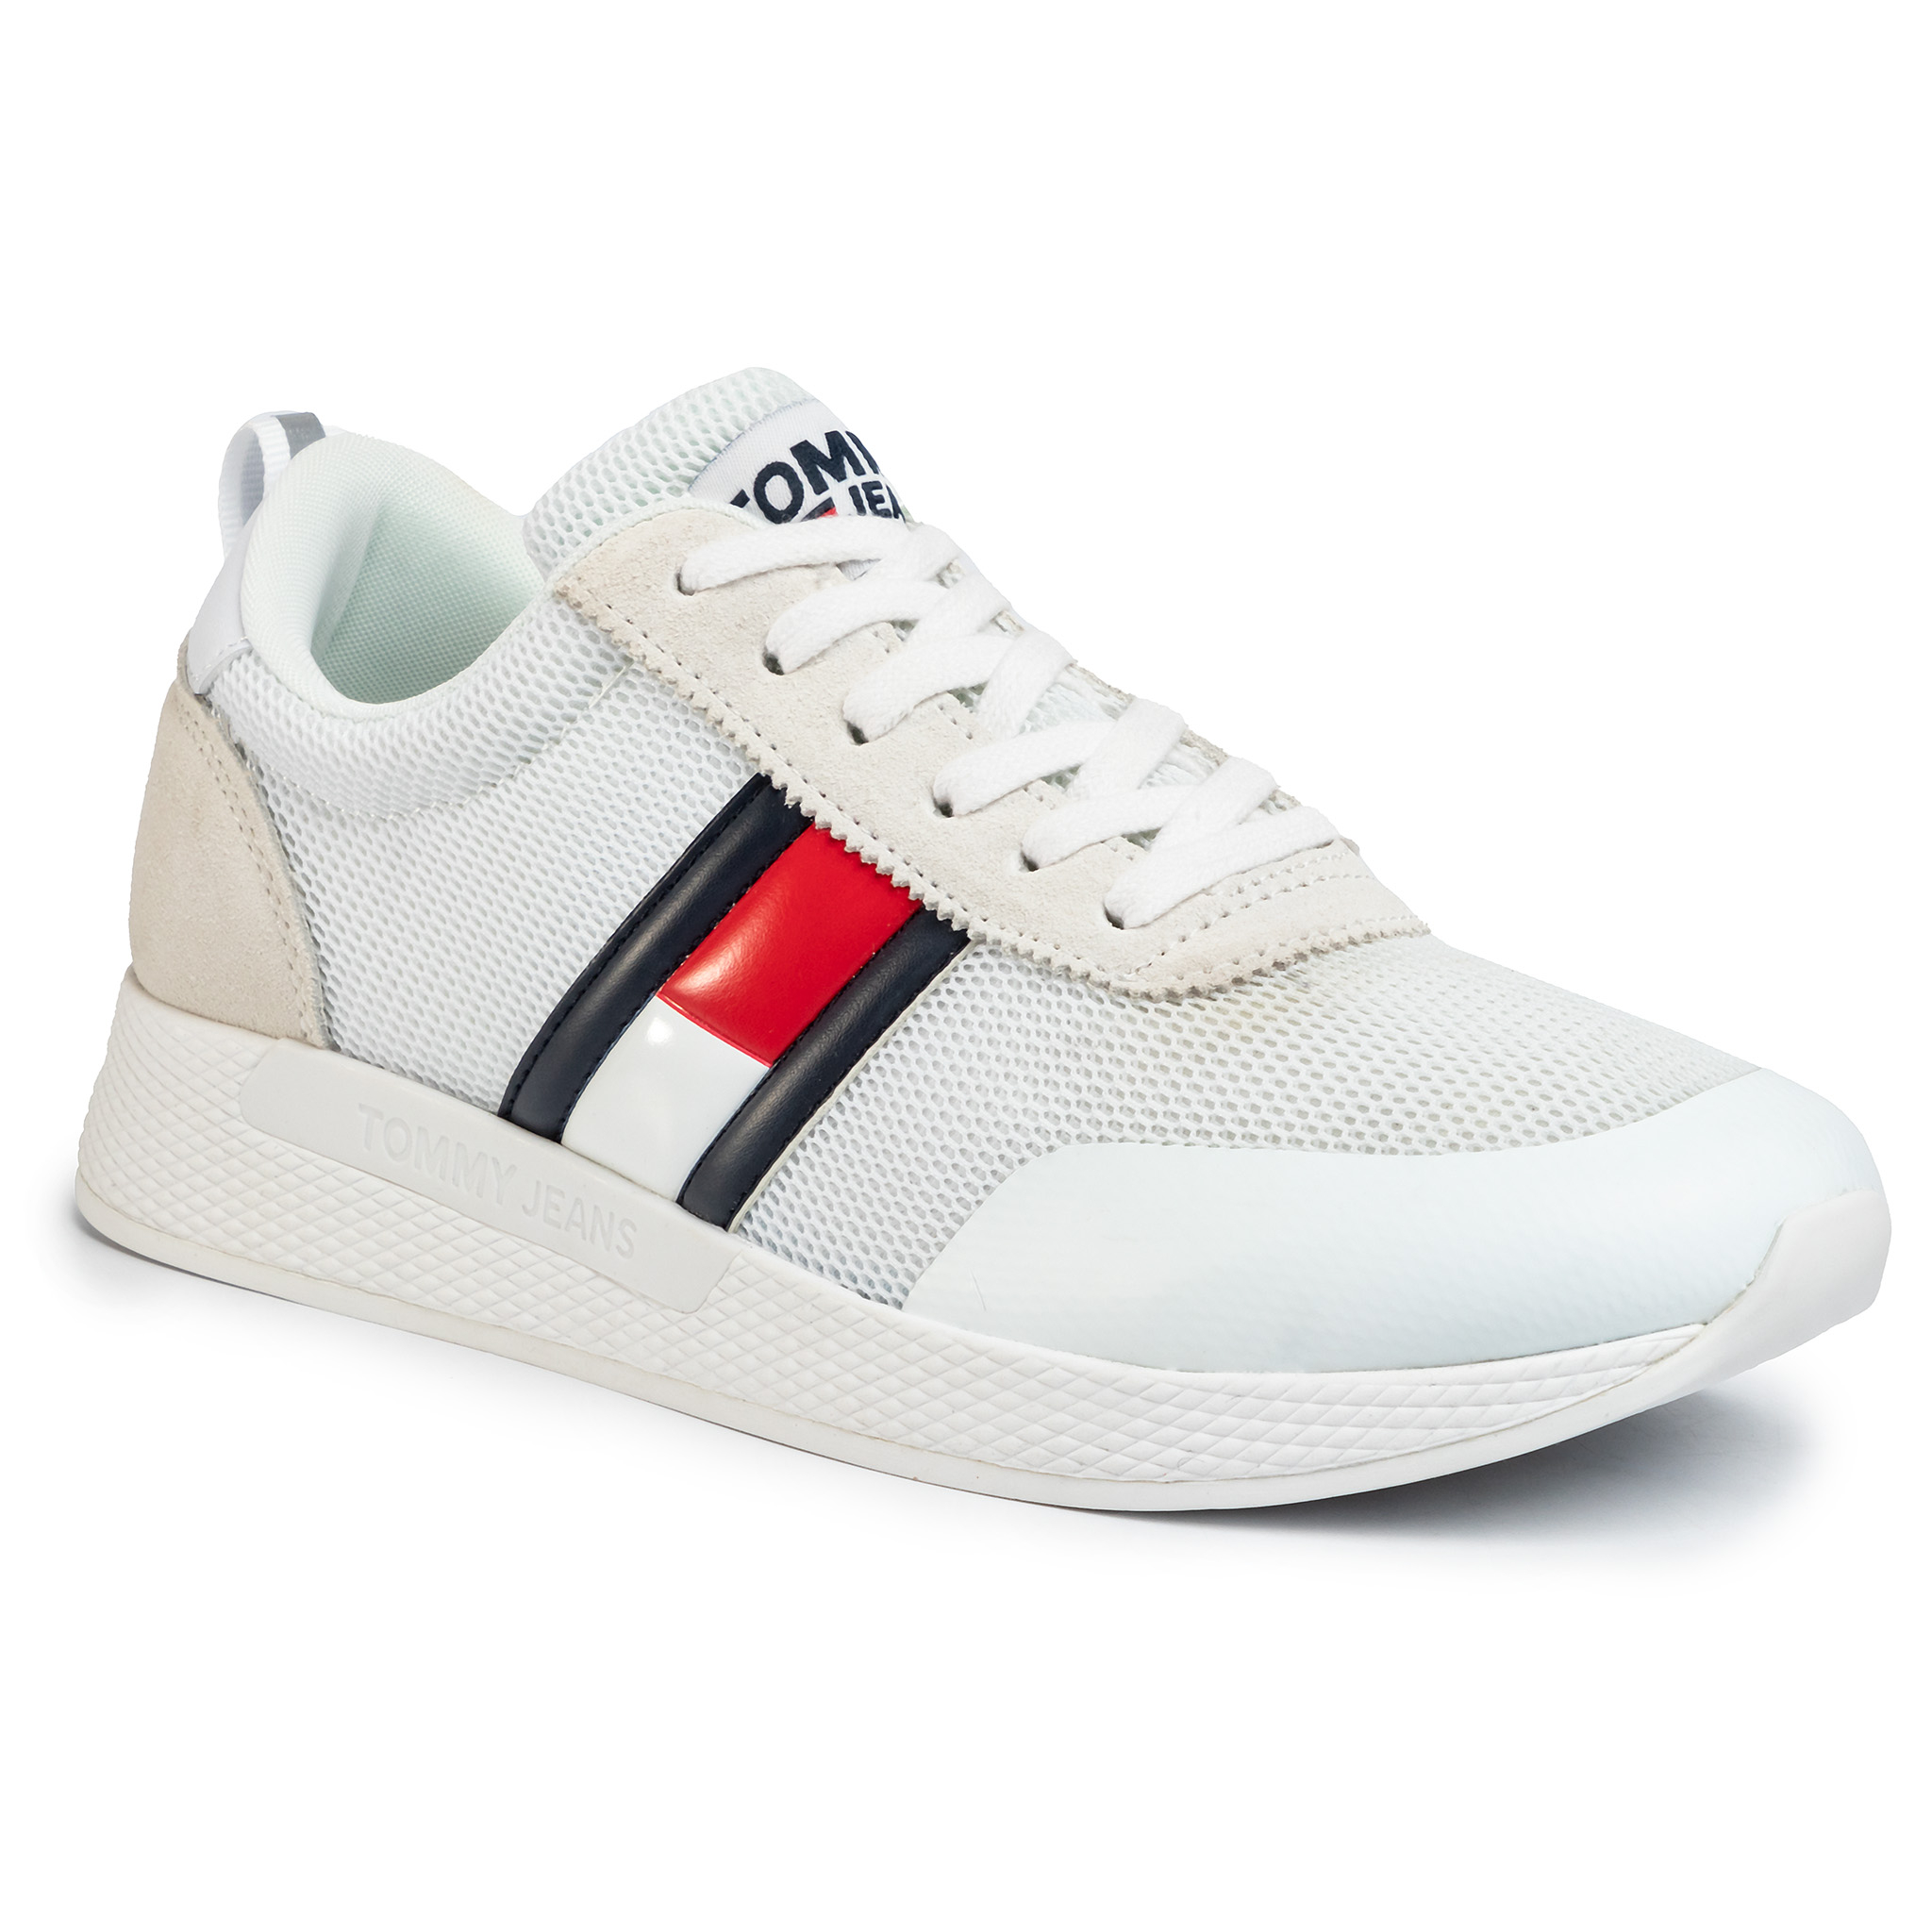 Sneakers Tommy Jeans - Flexi Tommy Jeans Flag Sneaker Em0em00400 White Ybs imagine epantofi.ro